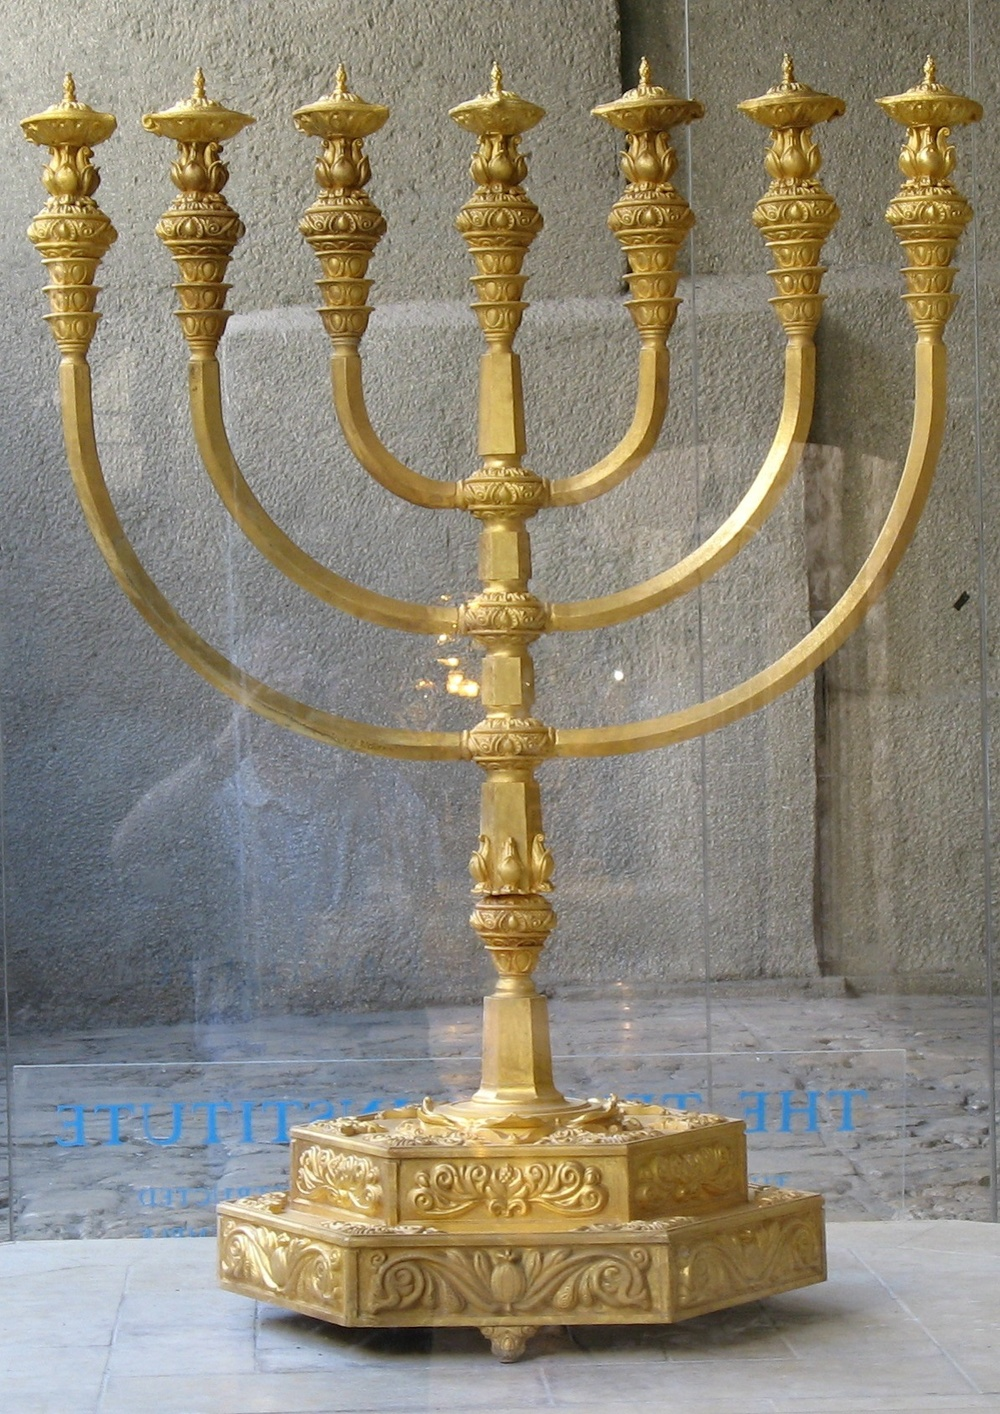 Click photo to download. Caption: Aeplica of the Jewish Temple's menorah, made by The Temple Institute in Israel. Credit: The Temple Institute, Jewish Quarter, Jerusalem via Wikimedia Commons.